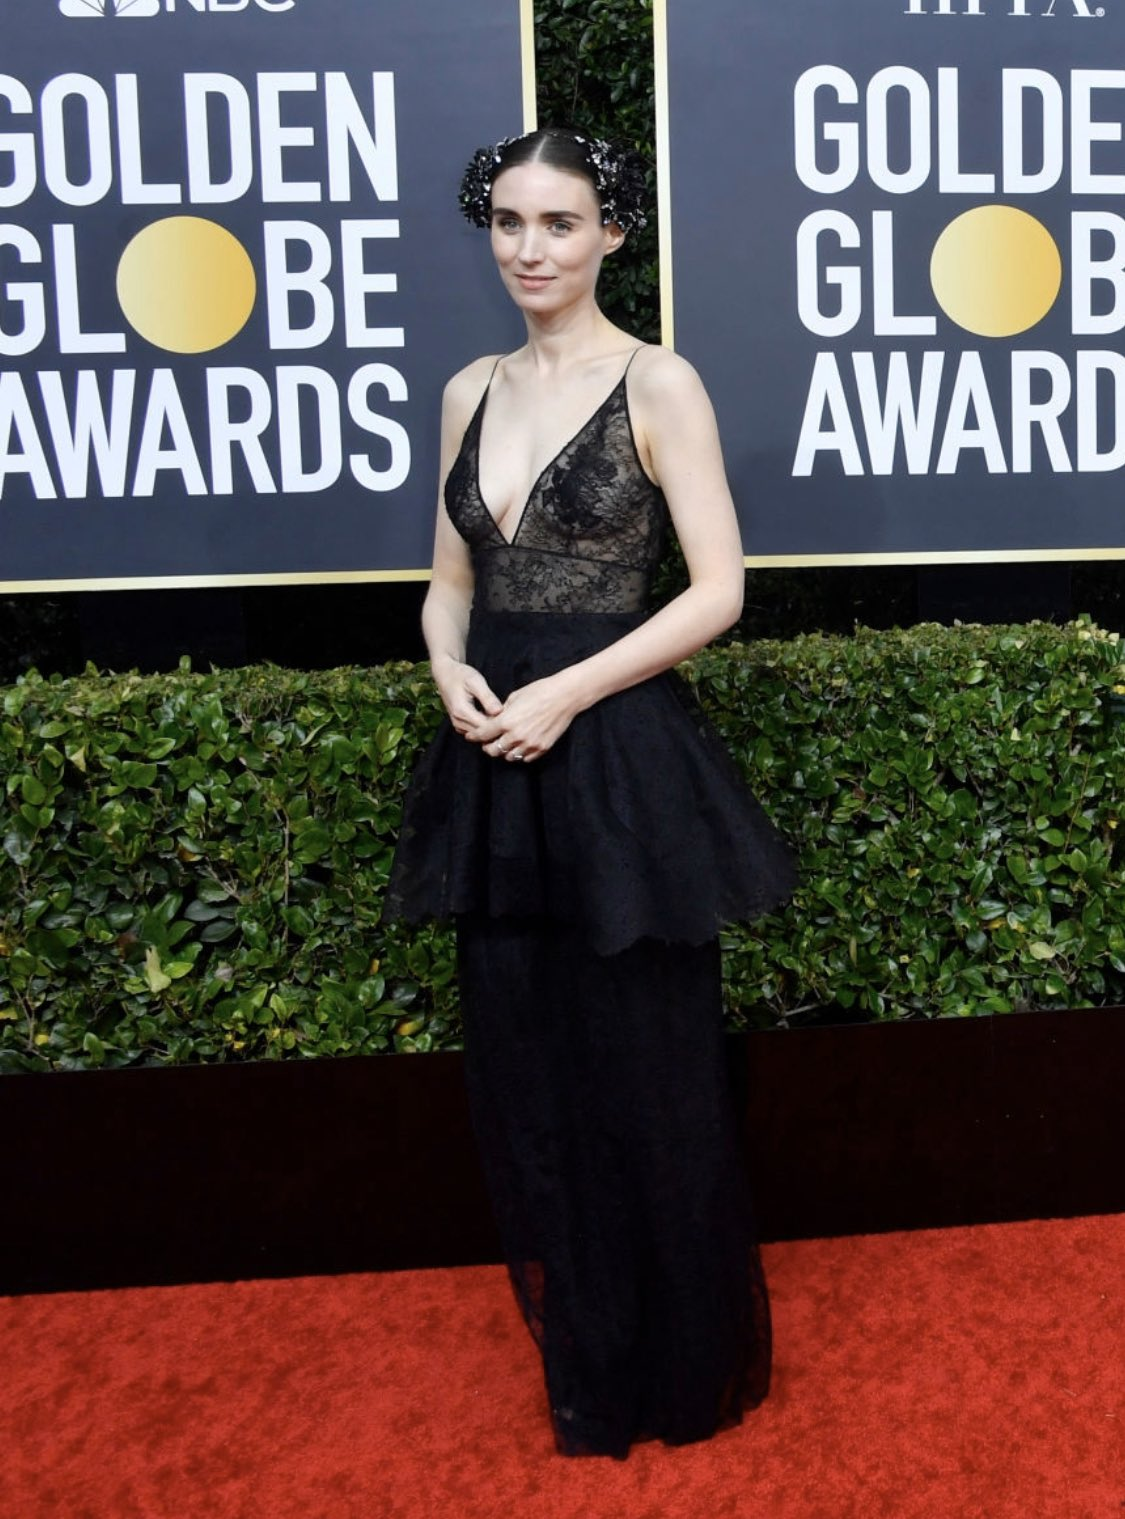 Rooney Mara attends the 77th Annual Golden Globe Awards